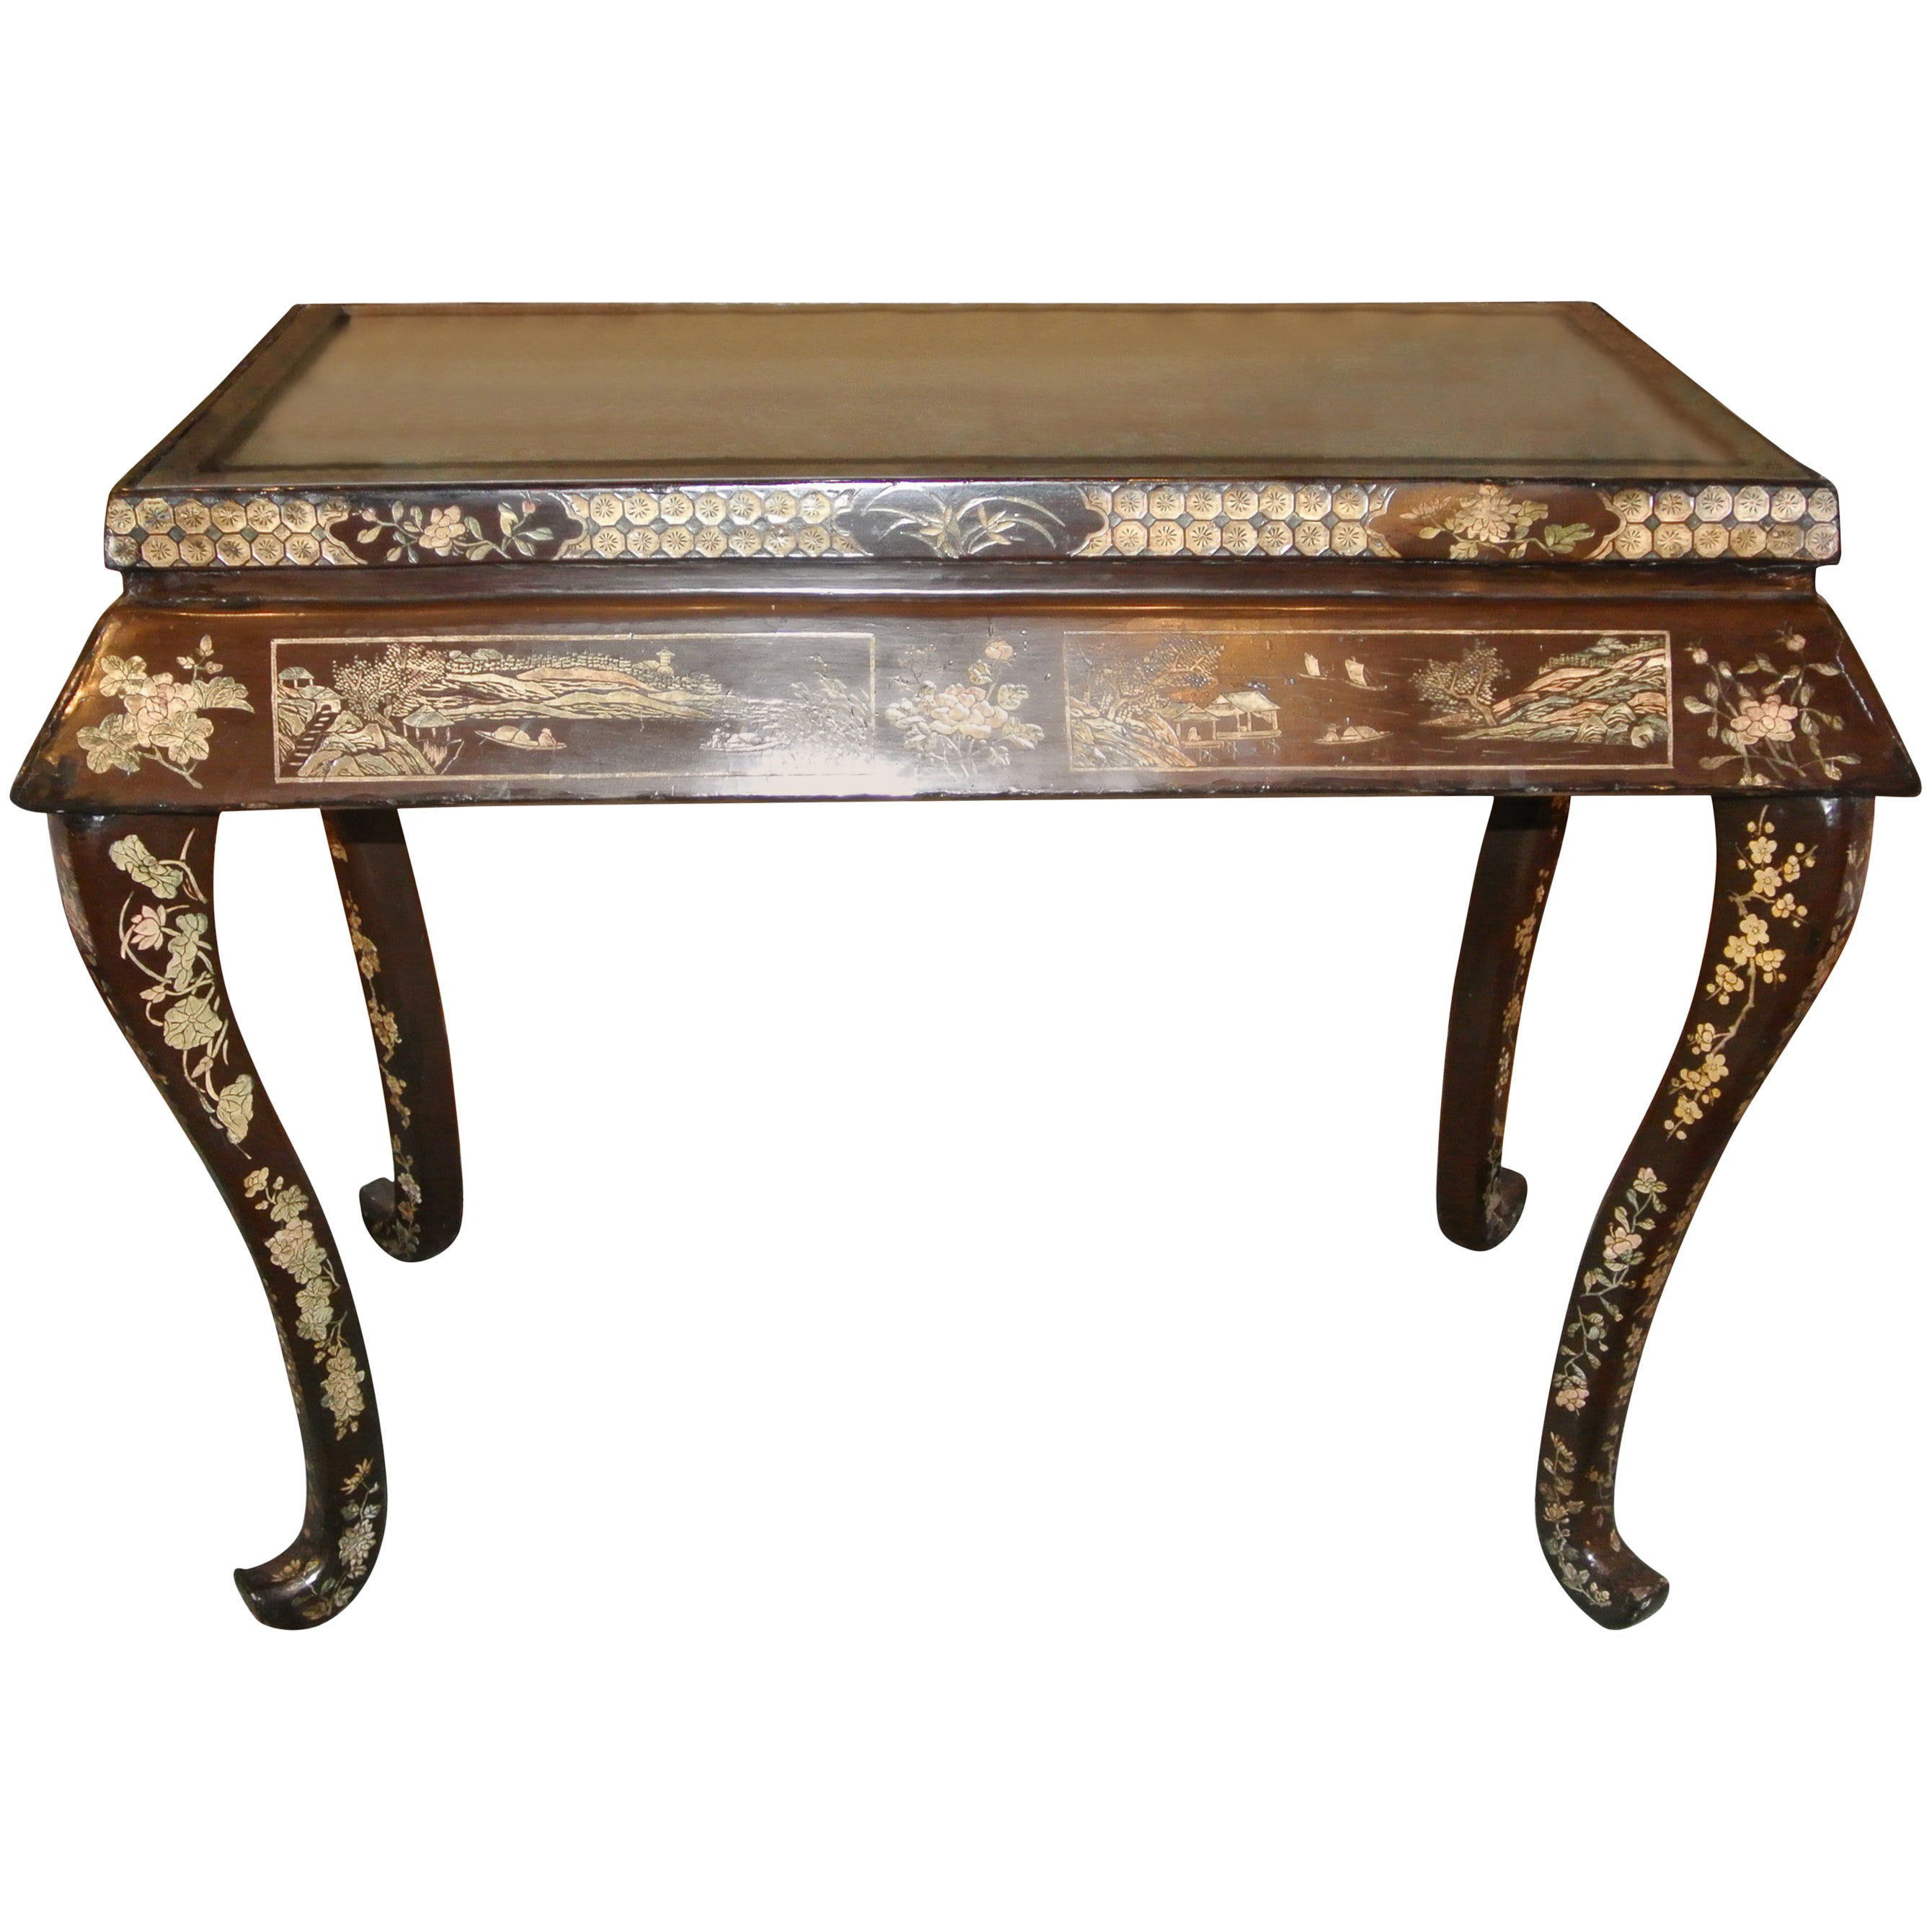 Early 19th Century Japanned Console Table